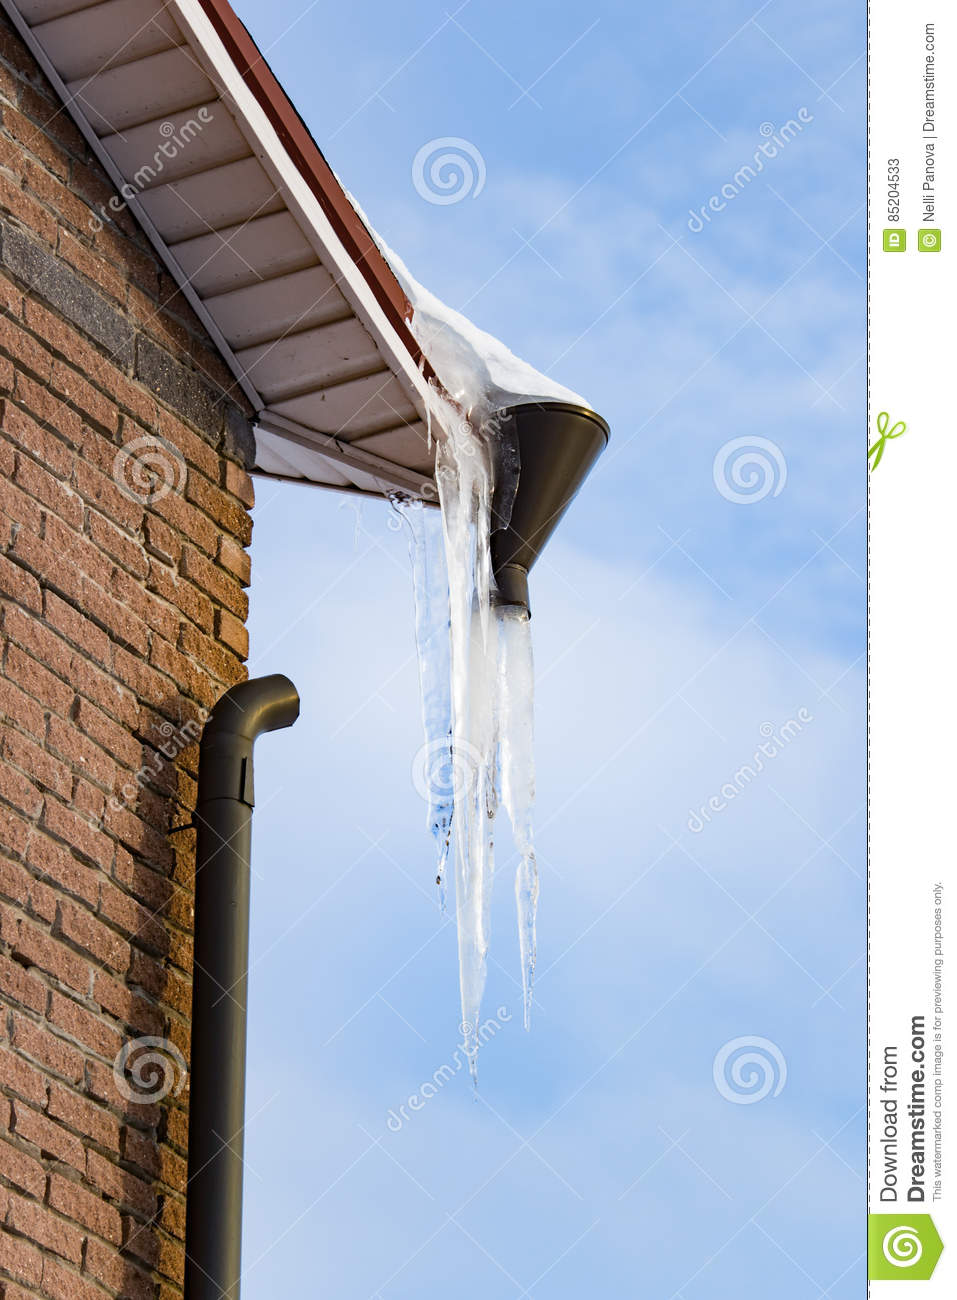 Large Icicles Hanging From The Roof Royalty Free Stock